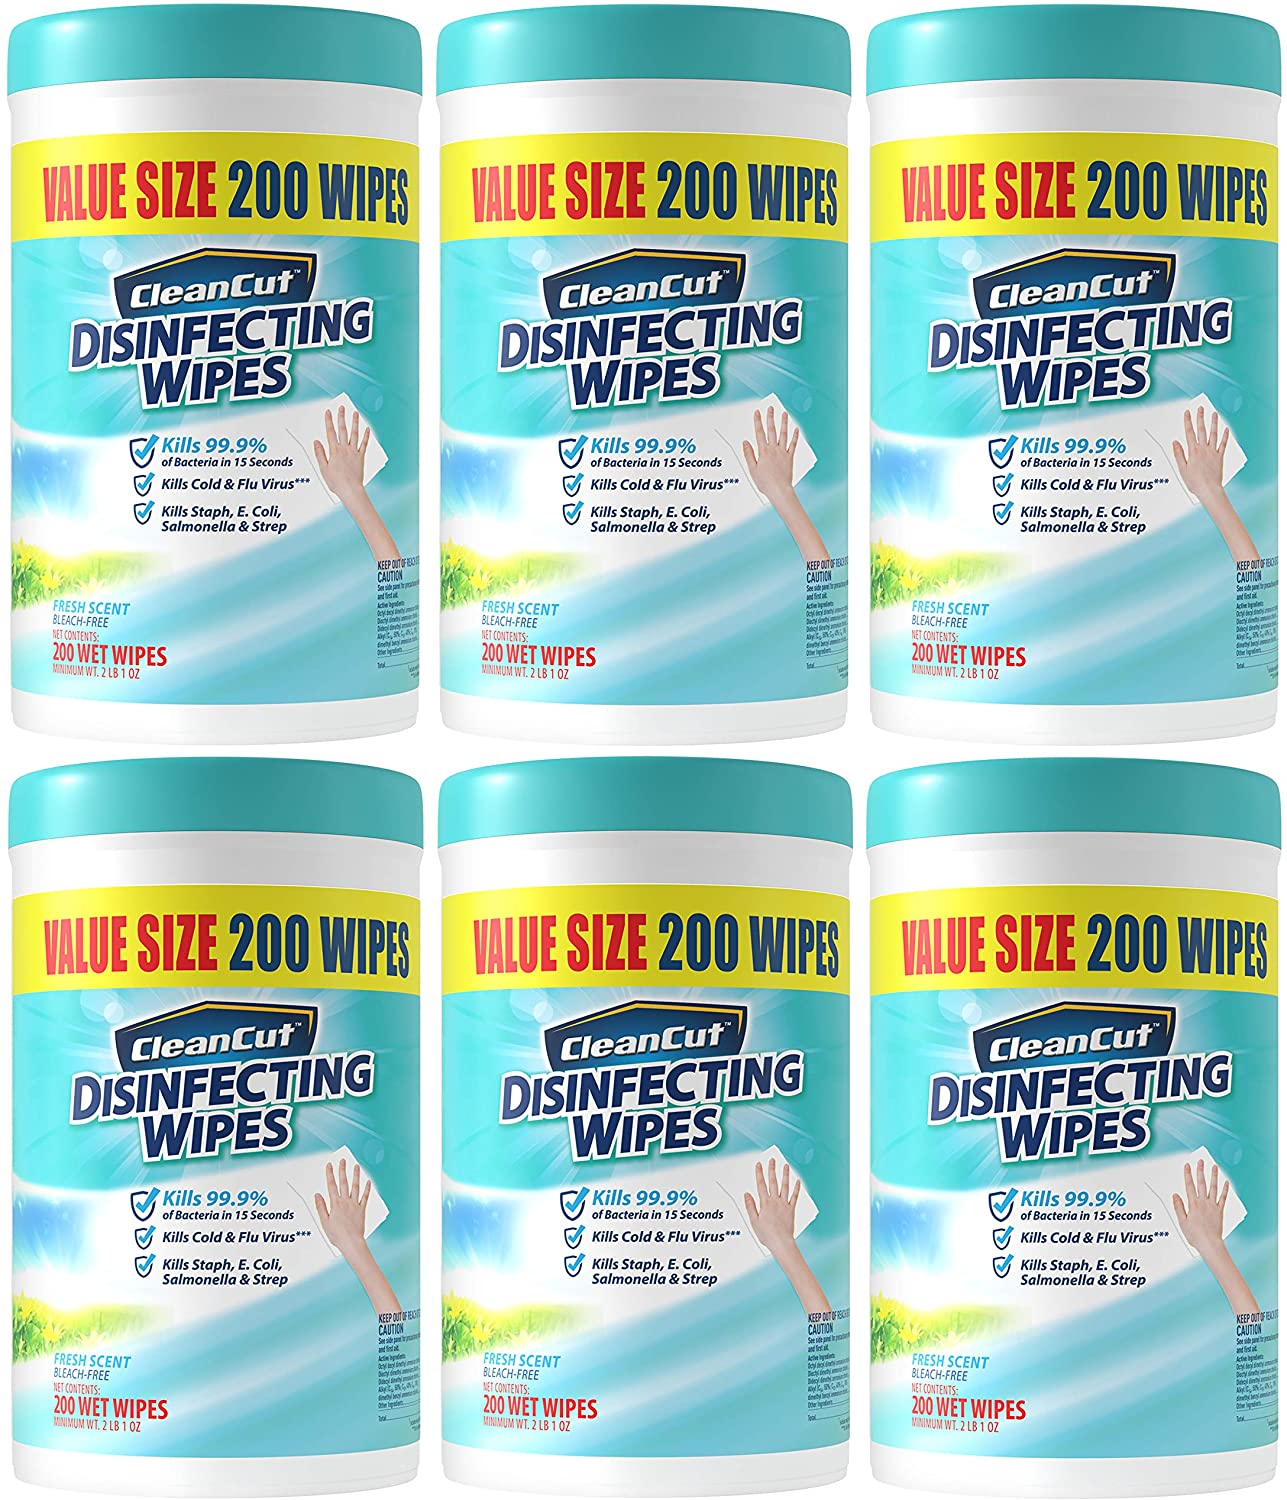 Disinfecting wipes by clean cut, fresh scent, value size 200 wet wipes